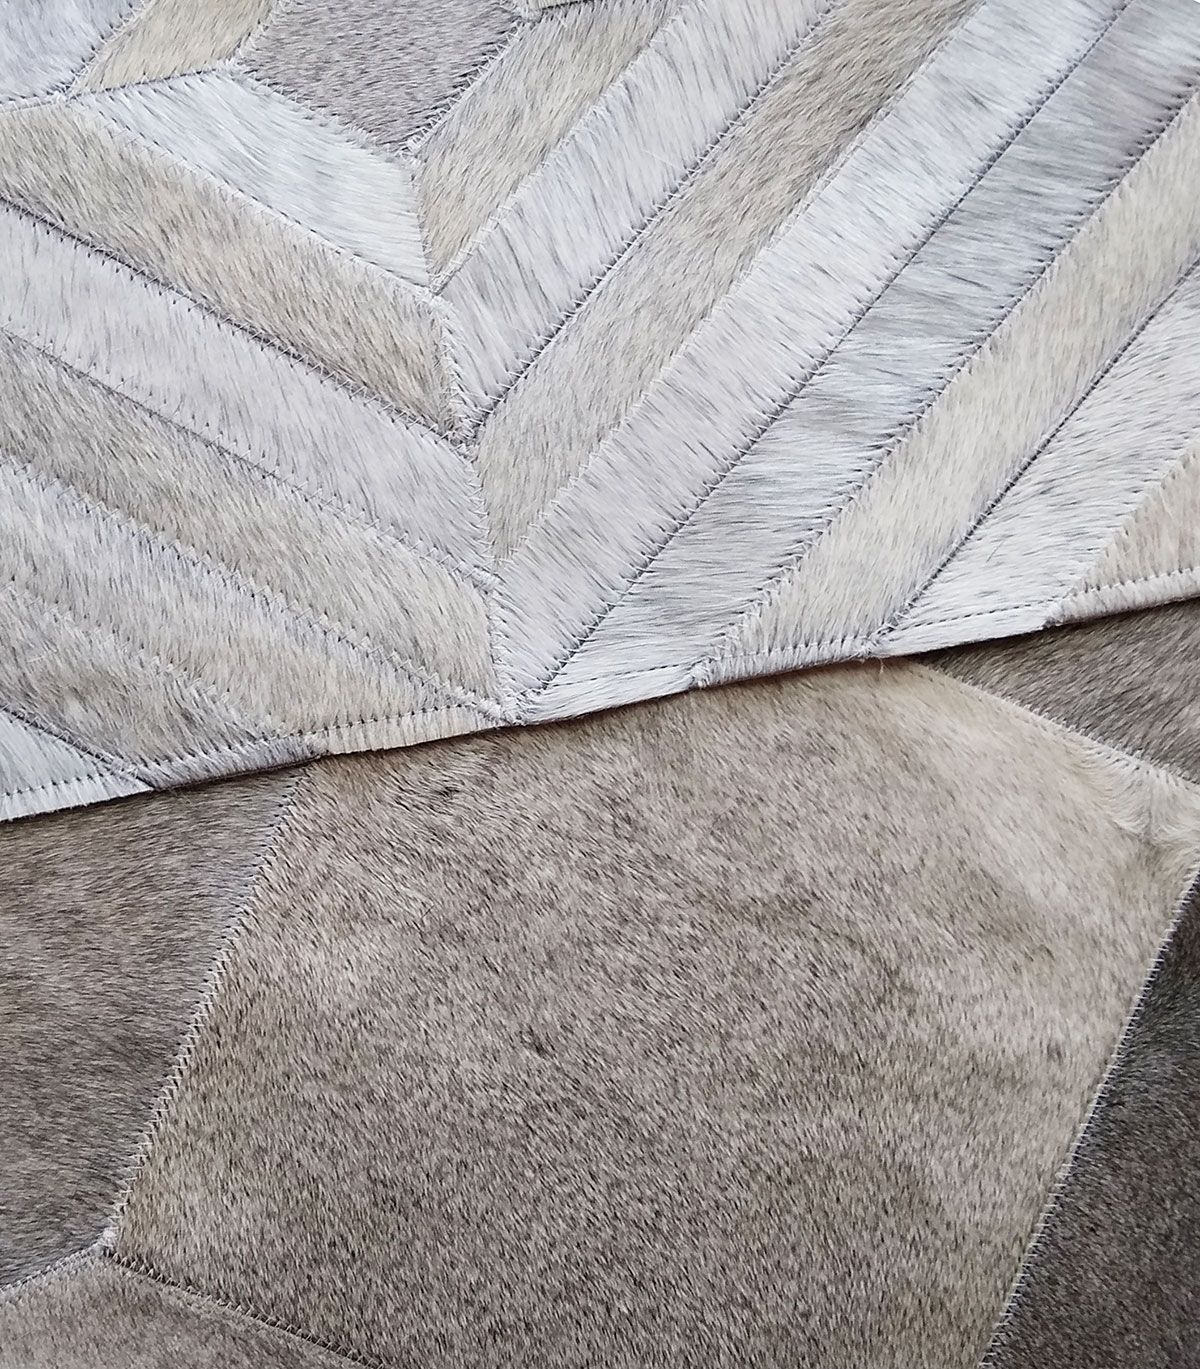 We Love Sample Day In 2020 Patchwork Cowhide Patchwork Cowhide Rug Cowhide Patch Rug